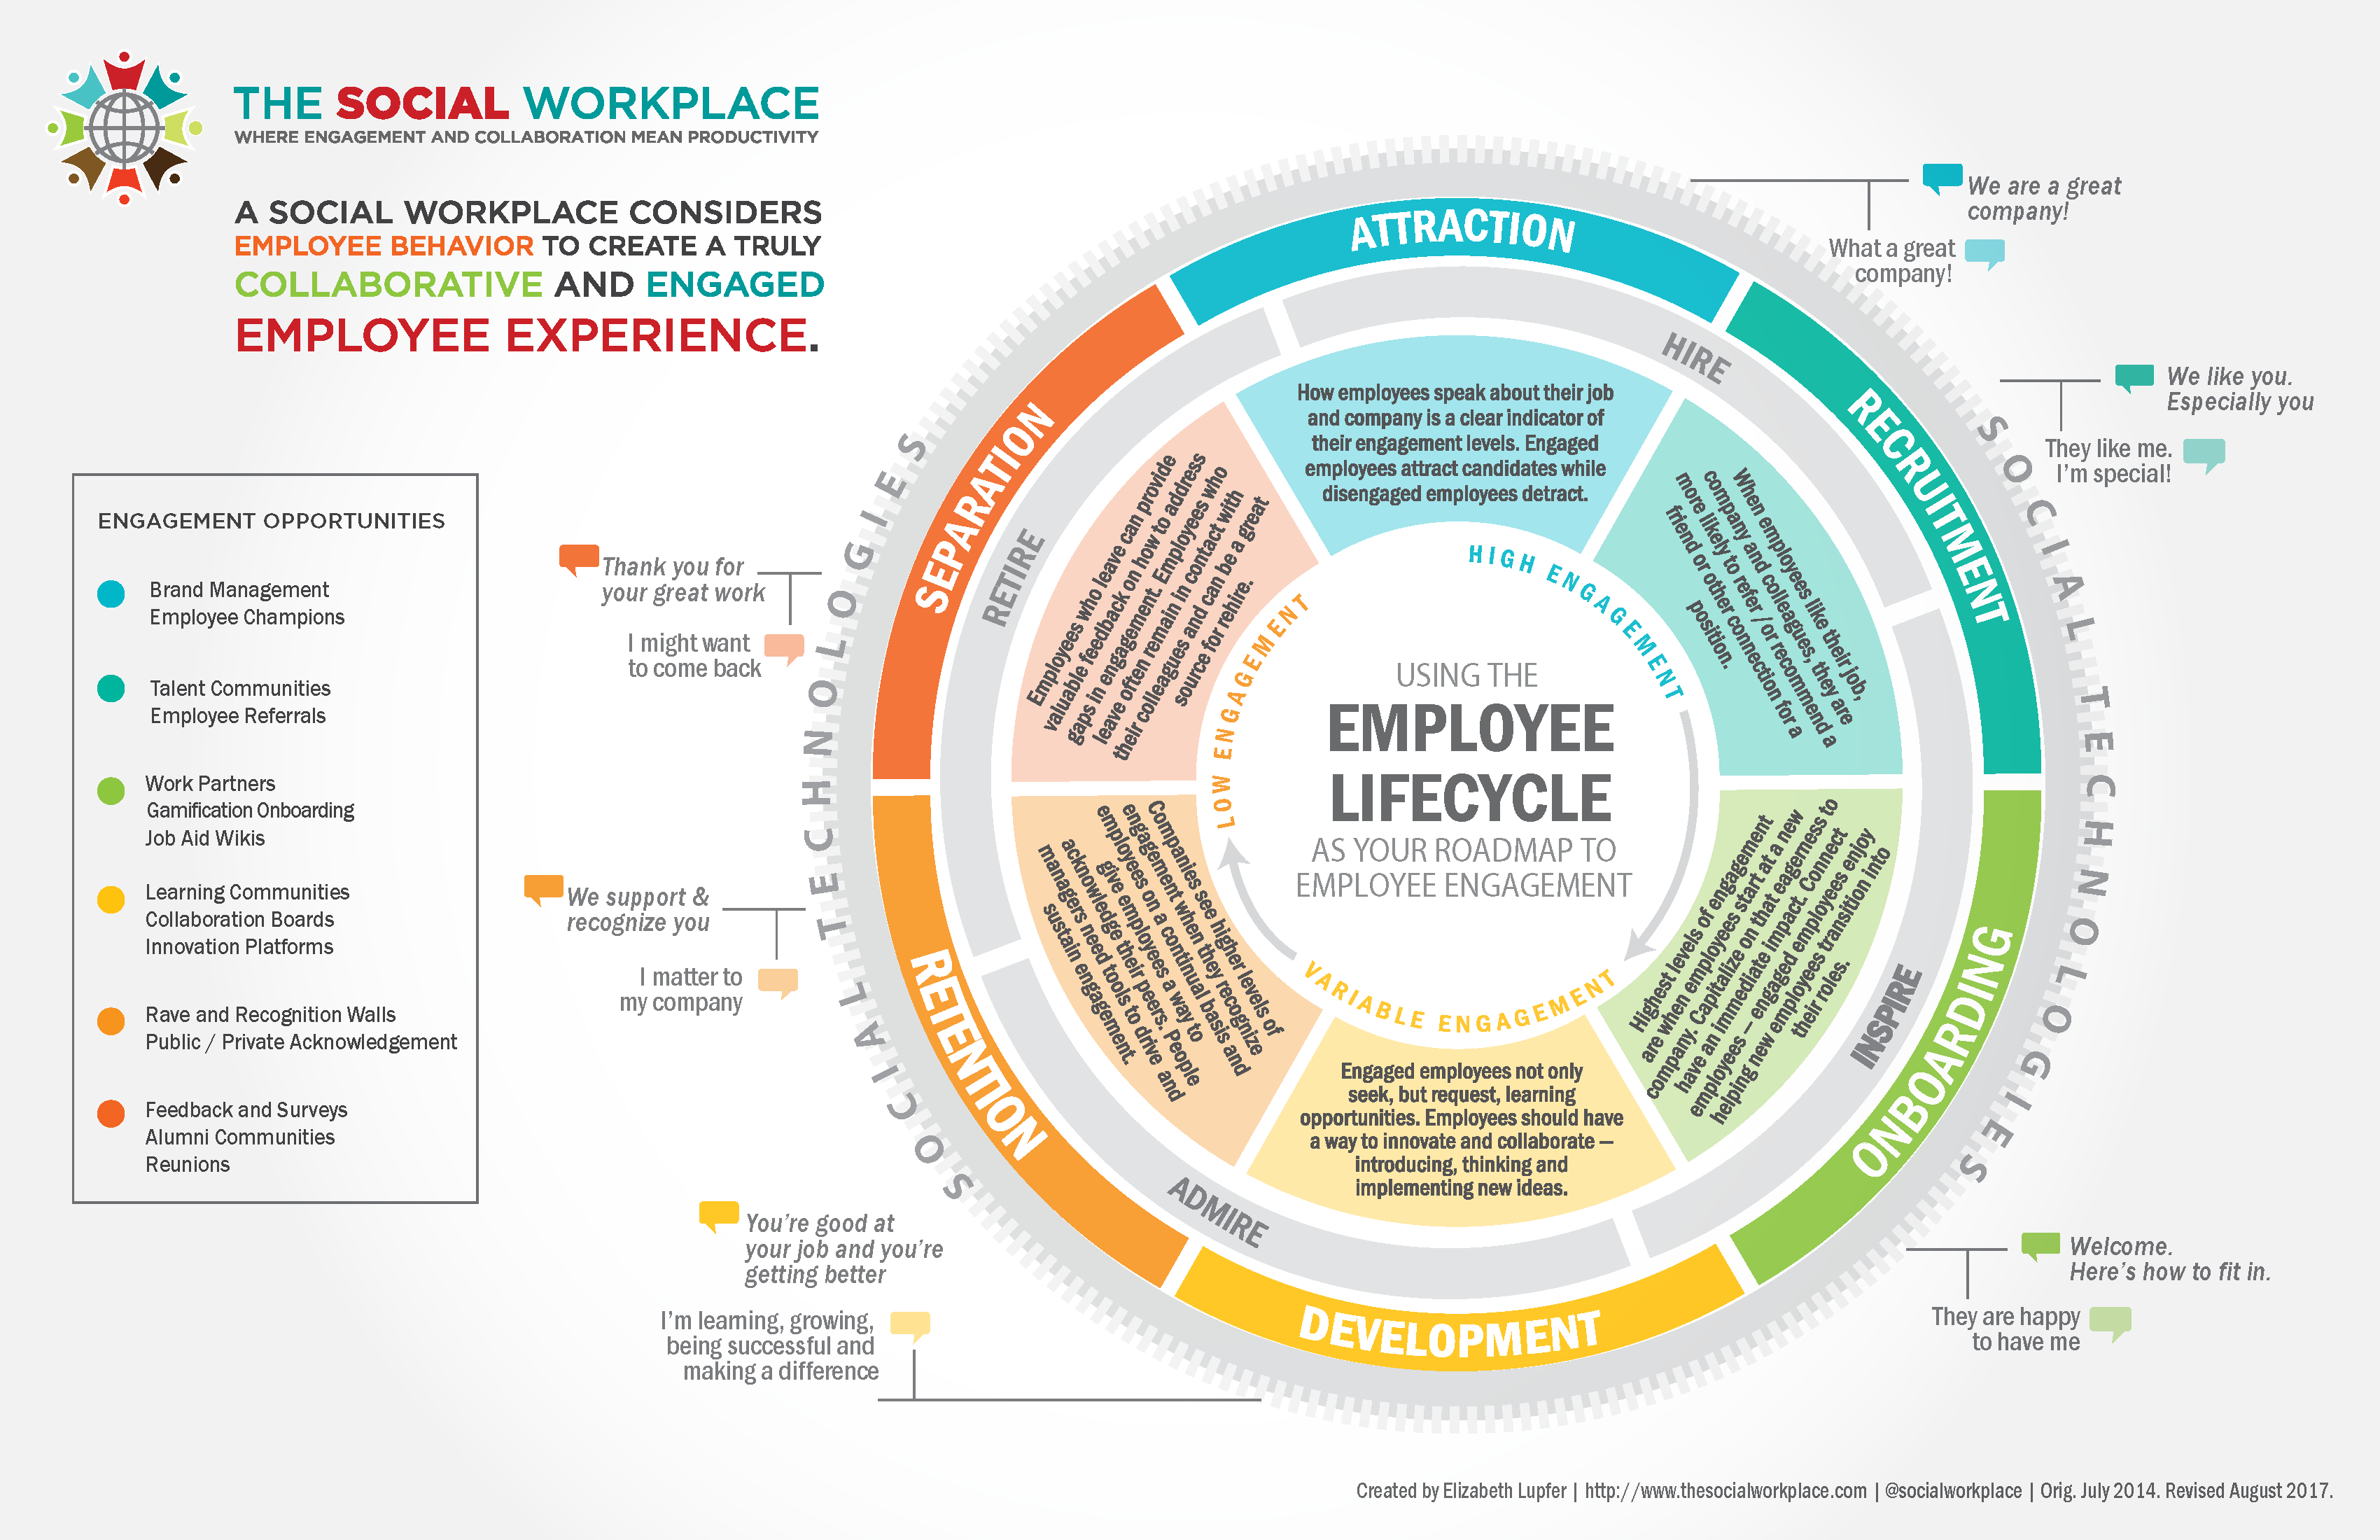 The Social Workplace Employee lifecycle 2017